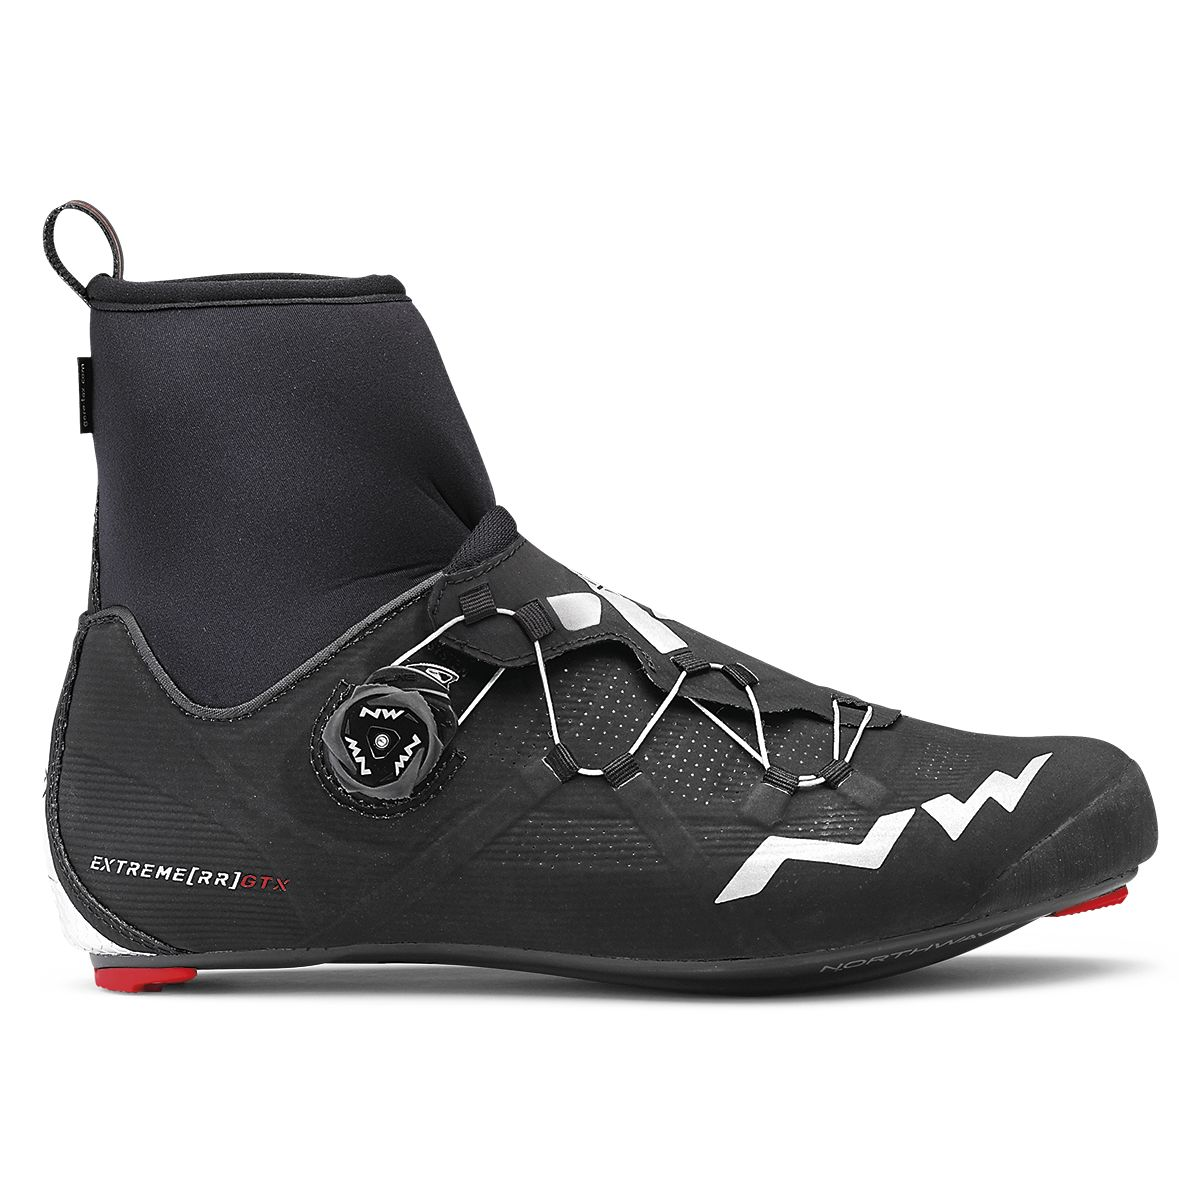 EXTREME RR 2 GTX winter road shoes